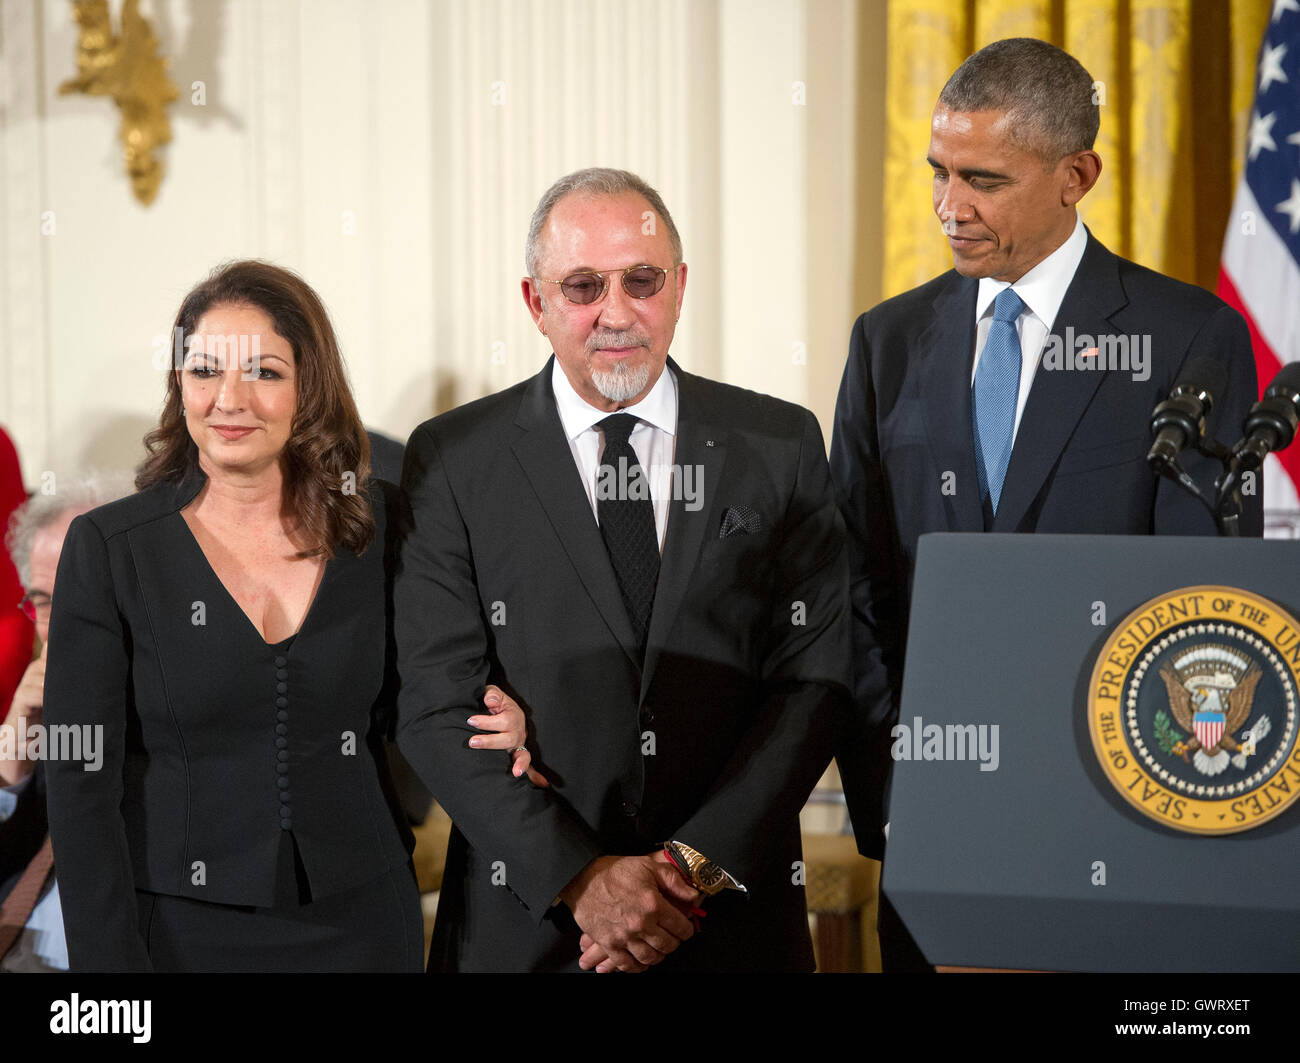 Freedom Coat Stand Gloria And Emilio Estefan Stand To Receive The Presidential Medal